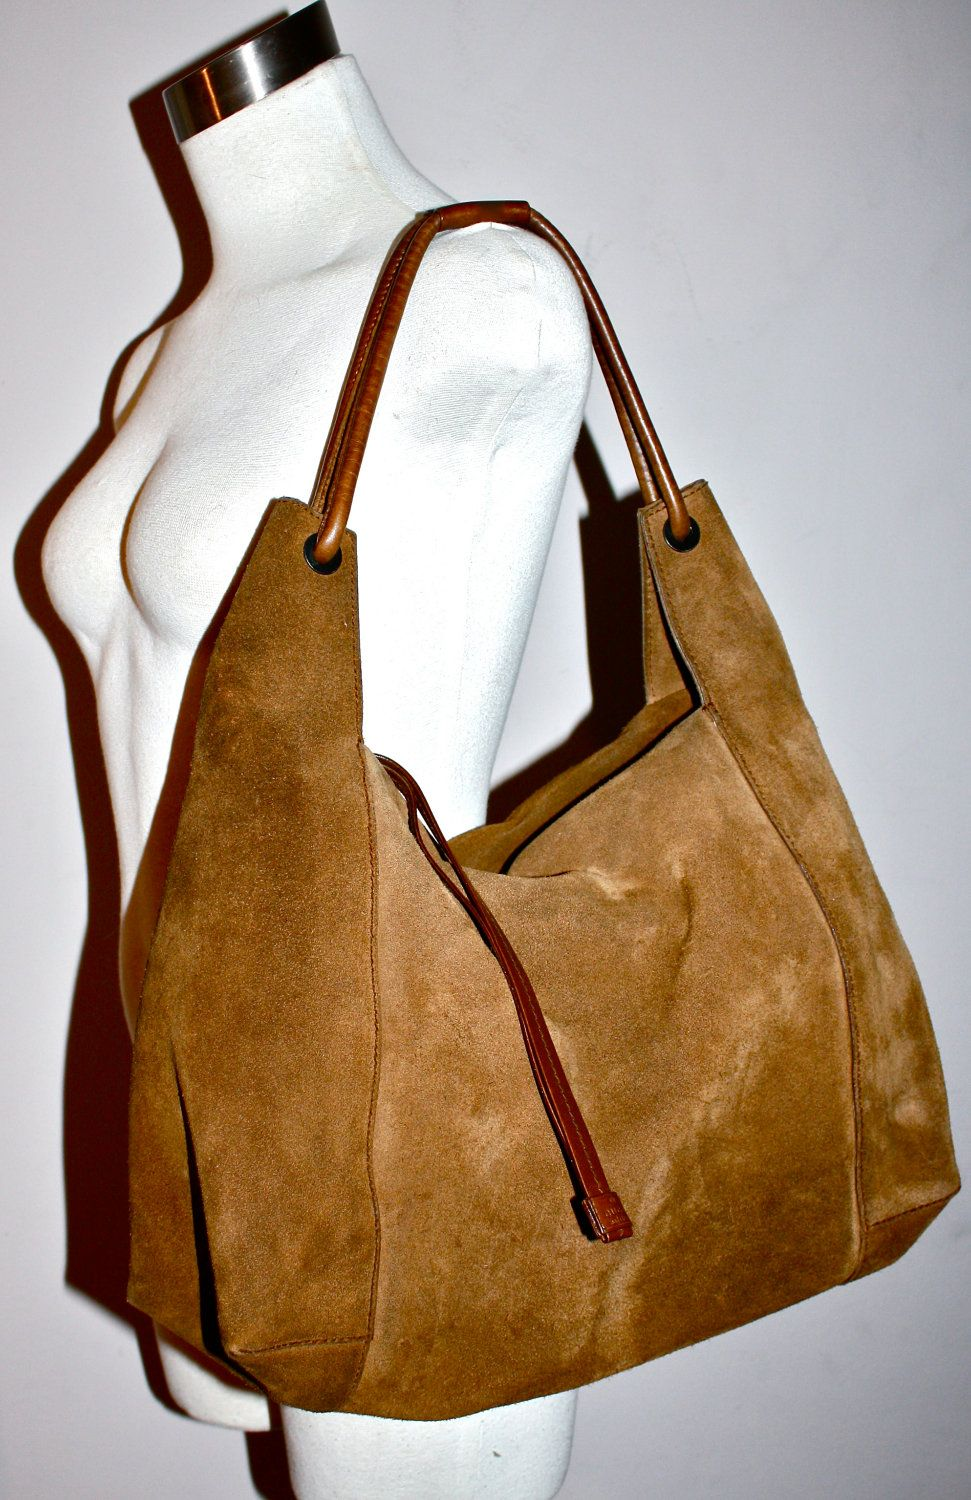 aaaf5d55d2c Huge VINTAGE GUCCI Authentic Brown Suede Slouchy Leather Hobo Bag ...